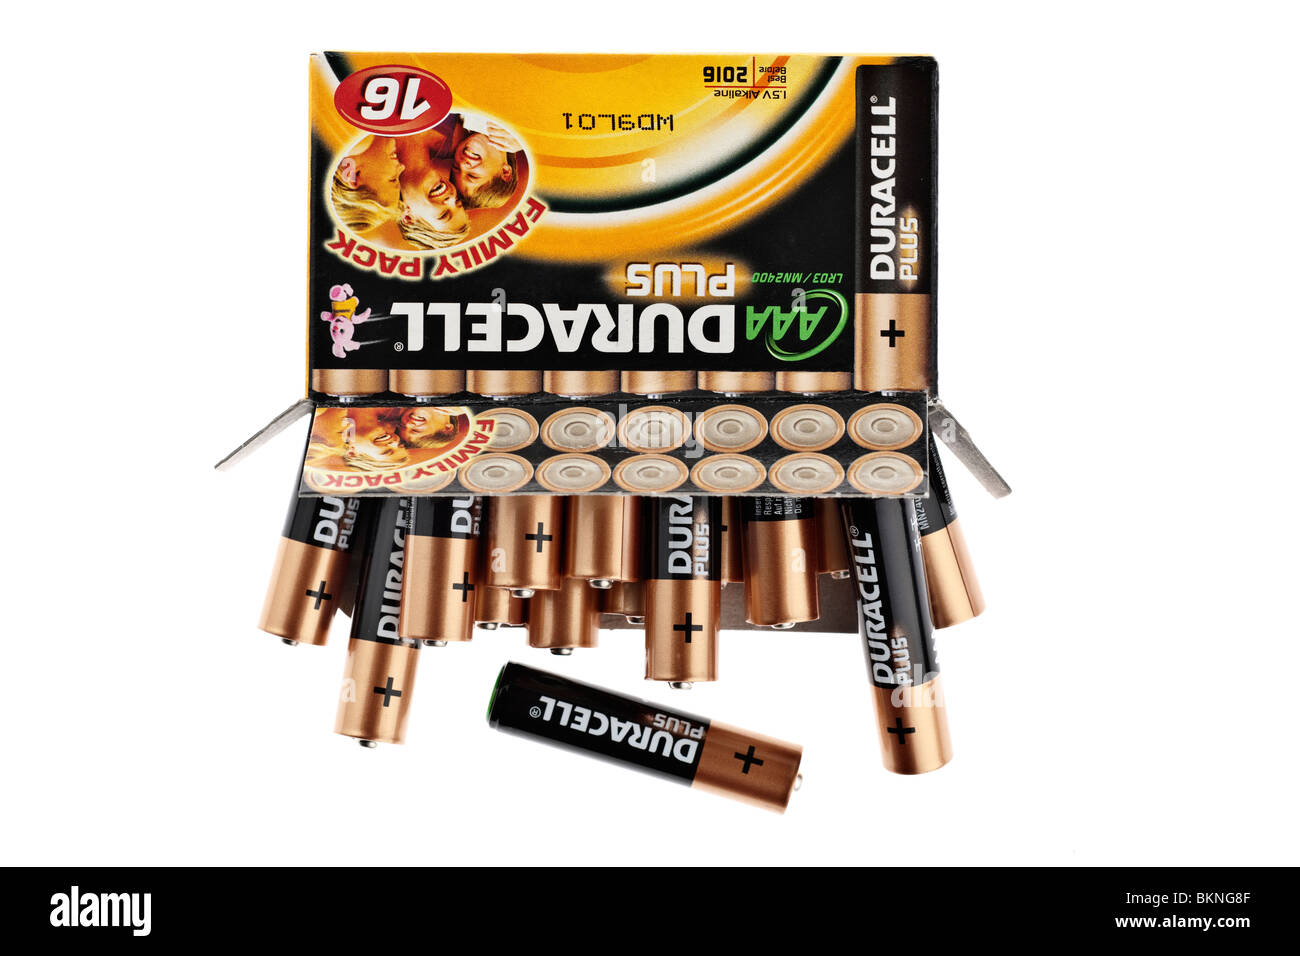 16 box family pack of AAA Duracell Plus batteries - Stock Image